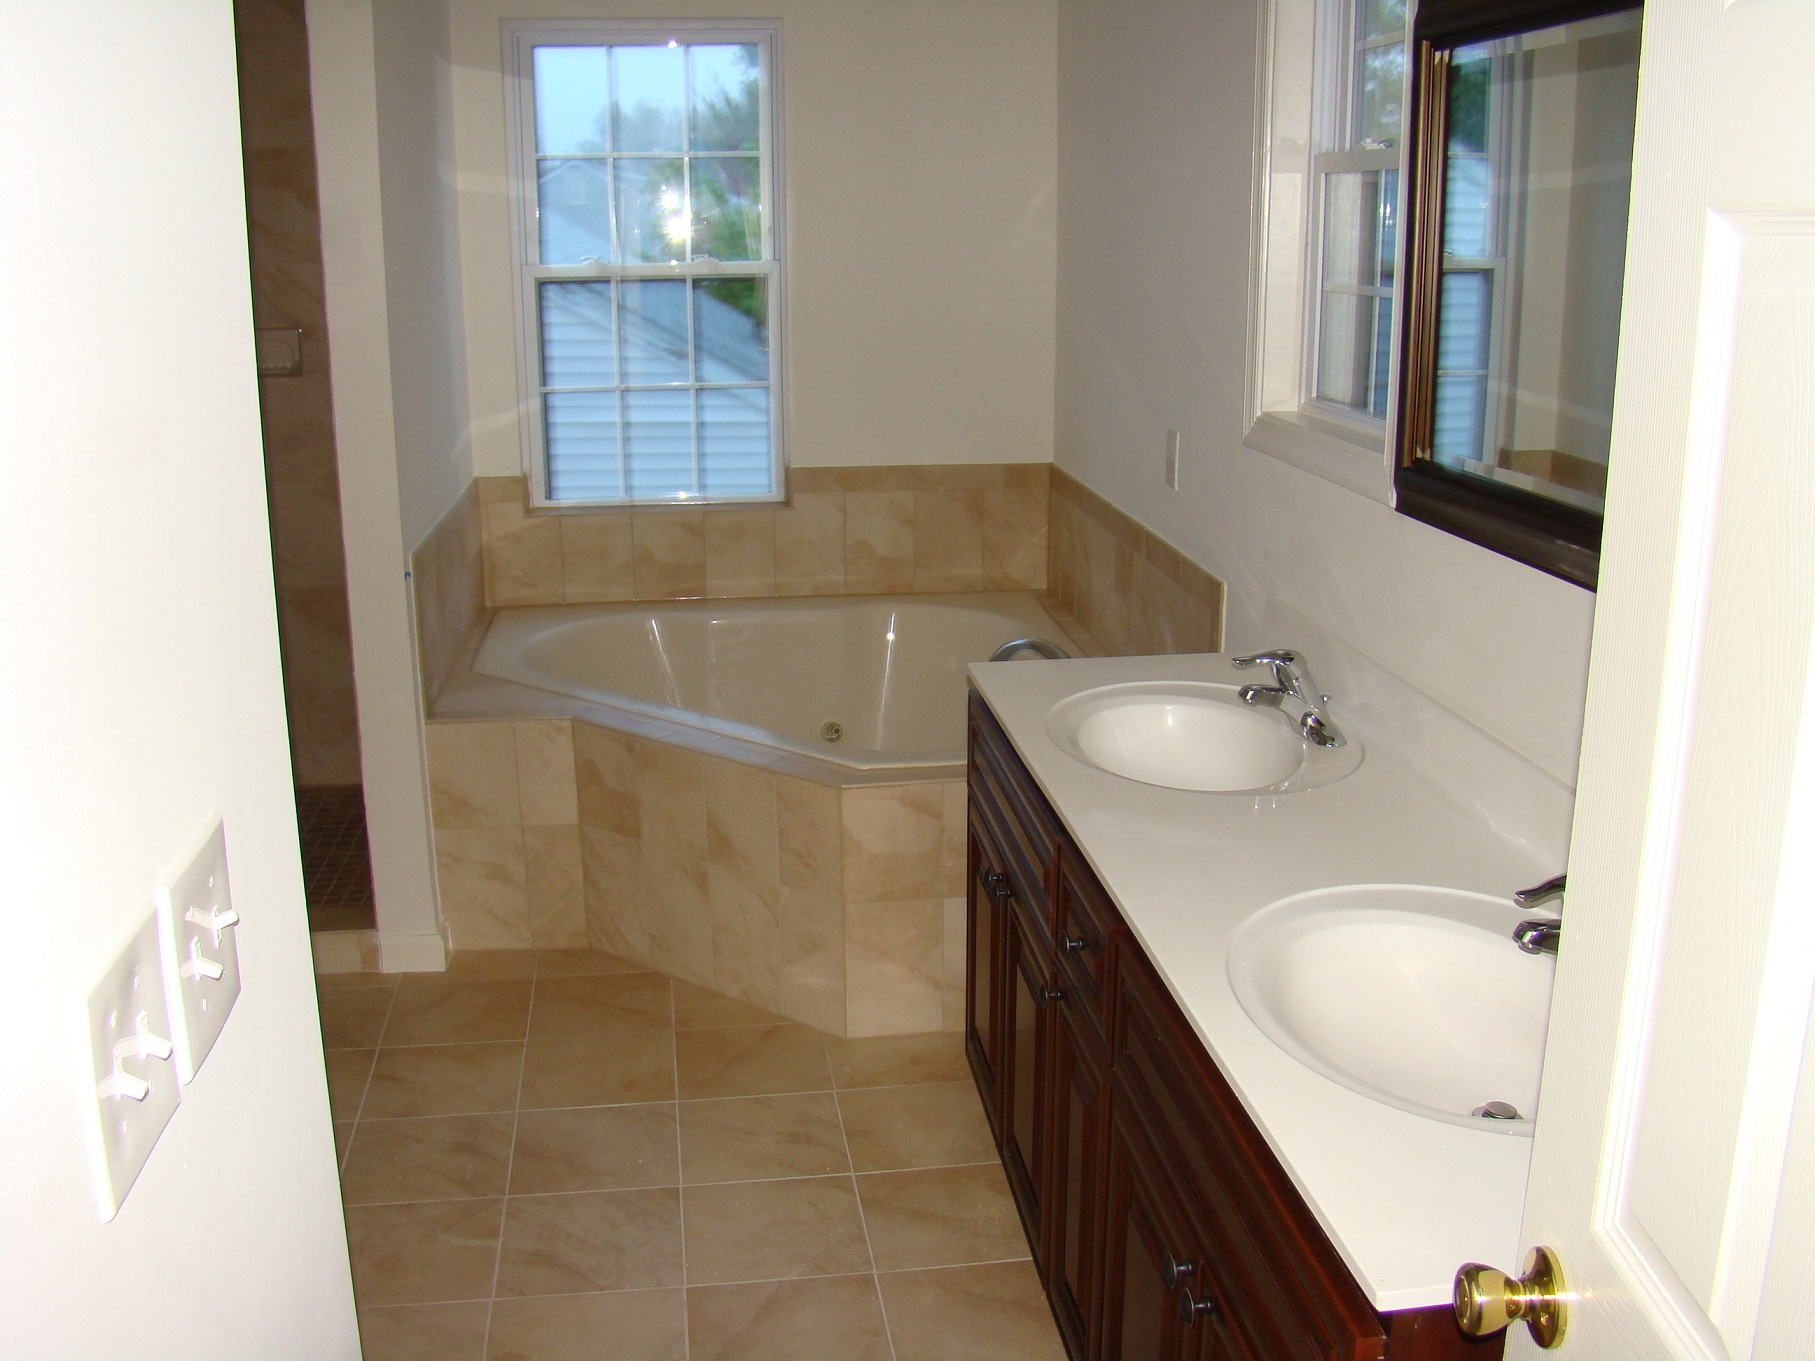 Bathroom Remodeling Arlington Va Arlington Virginia Home Remodeling Contractor  Elite Contractor .